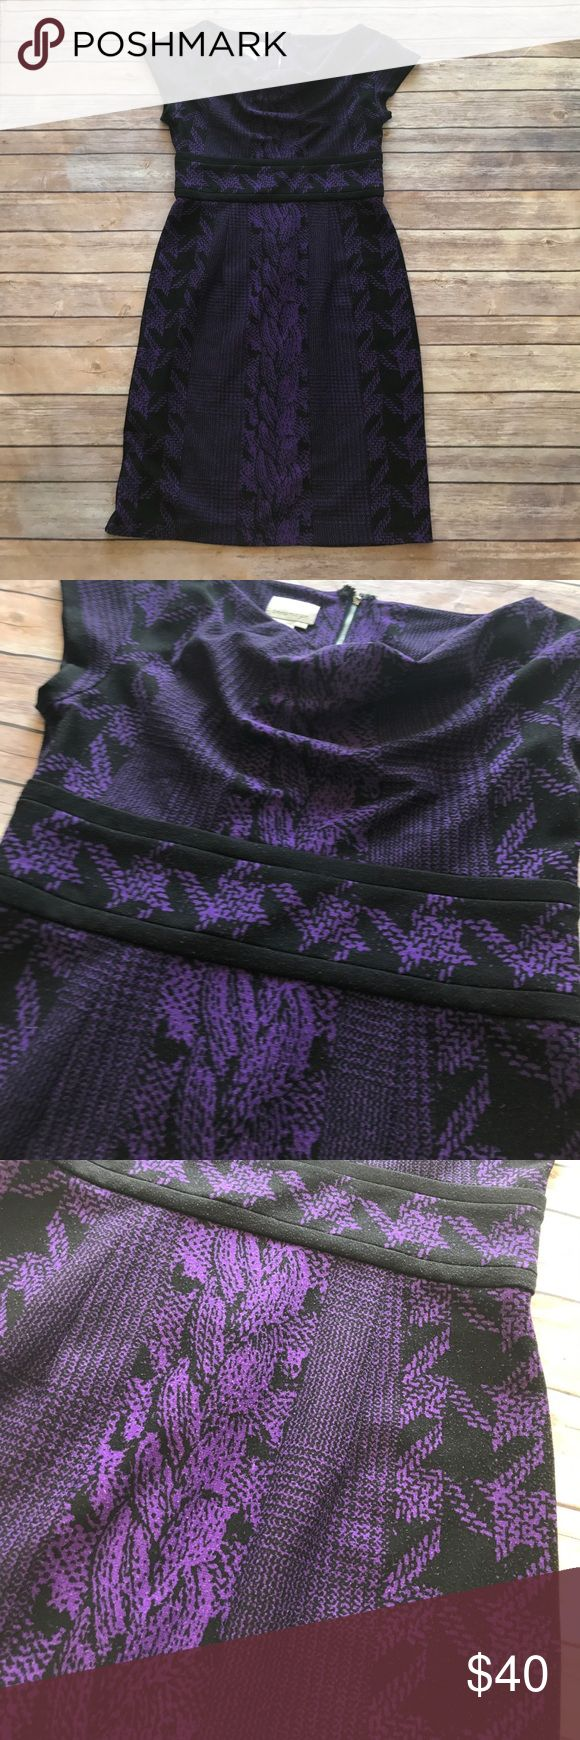 Donna Morgan - Purple and Black Dress. Donna Morgan - Purple and Black Dress. Houndstooth design waist features two lines. Exposed zipper back. MIDI style cowl neck dress. Donna Morgan Dresses Midi